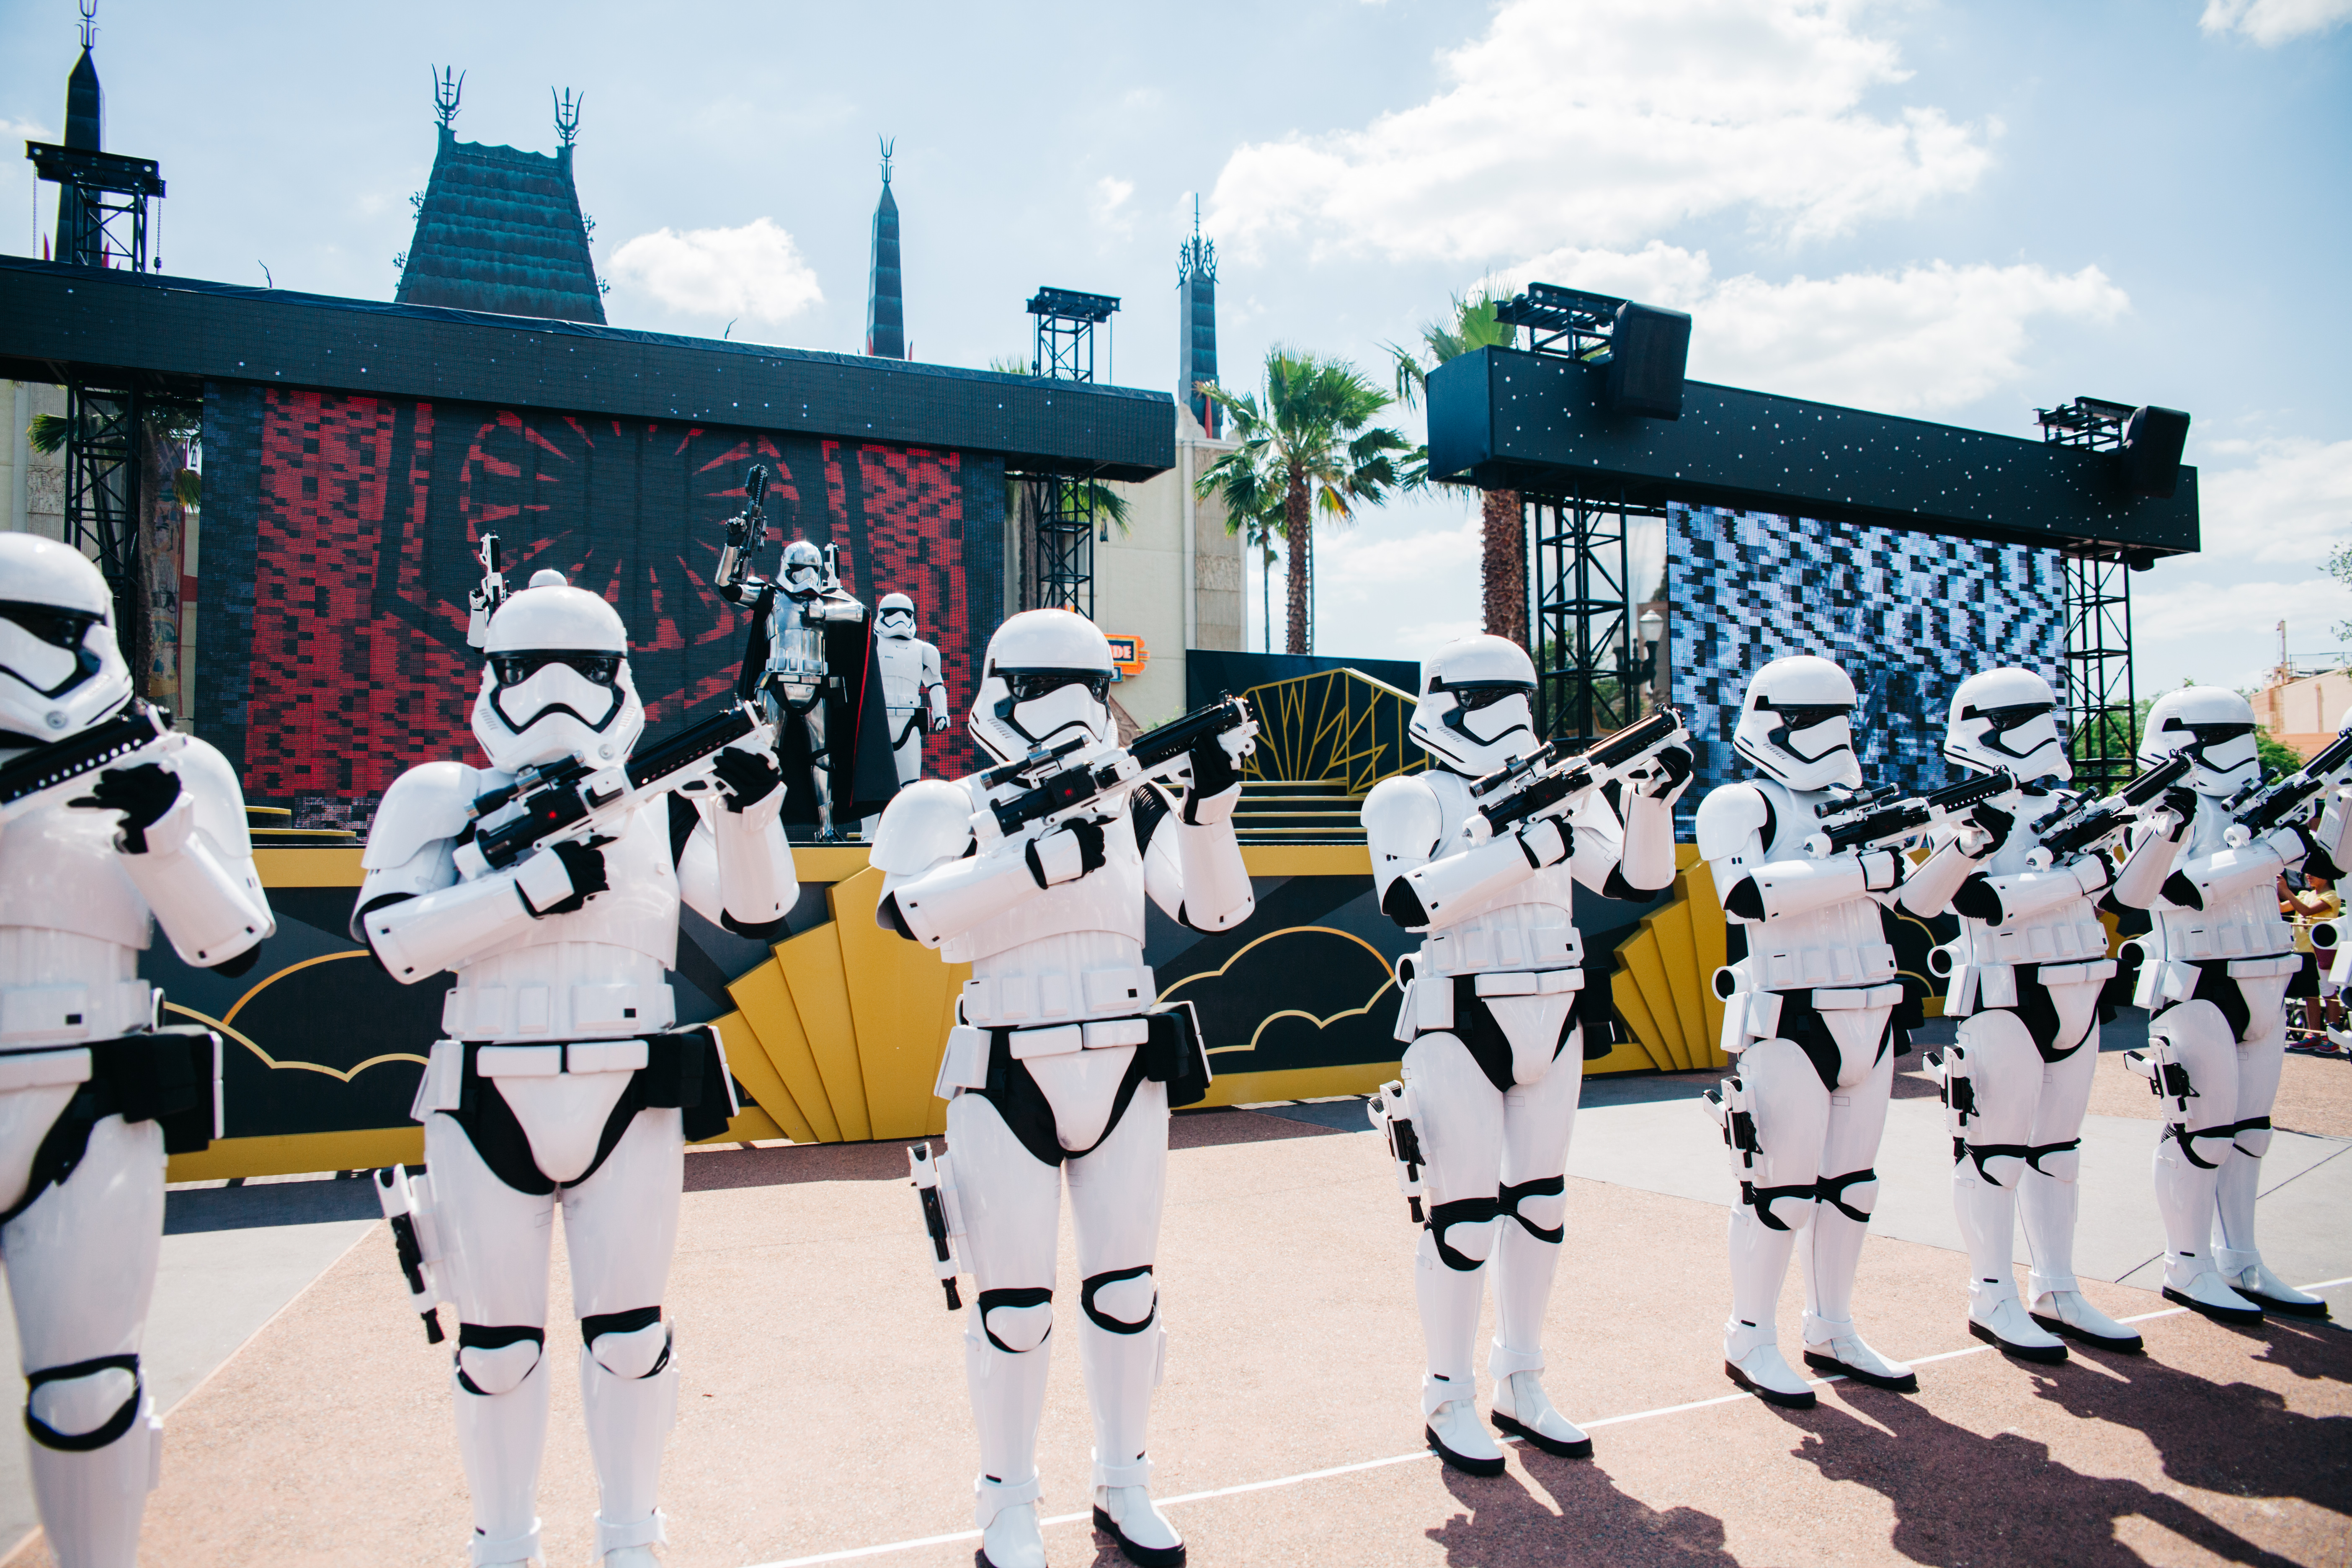 Watch Captain Phasma march onto the stage while her stormtroopers surround you...